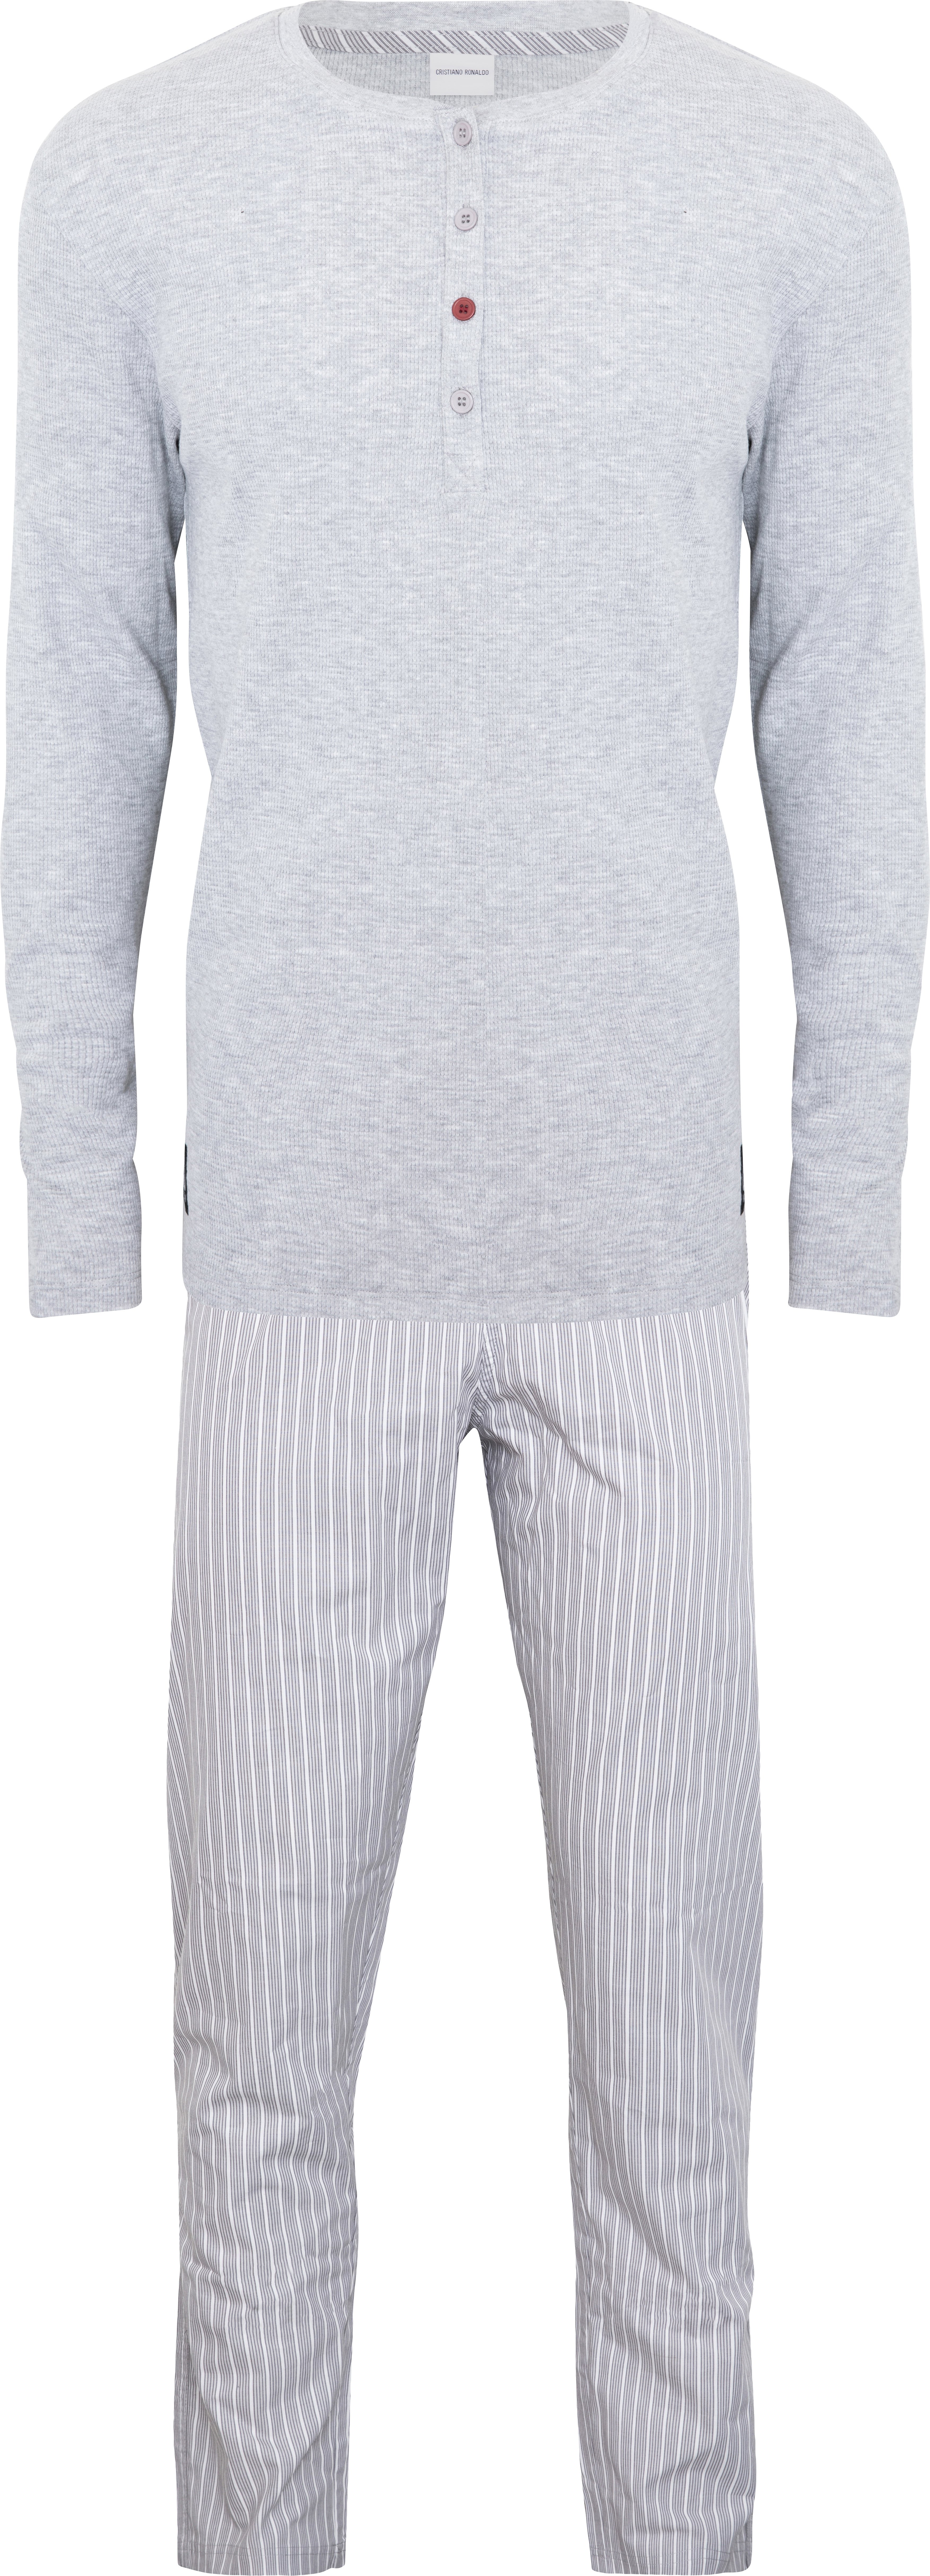 CR7  - Mens Pyjamas Set - Grey